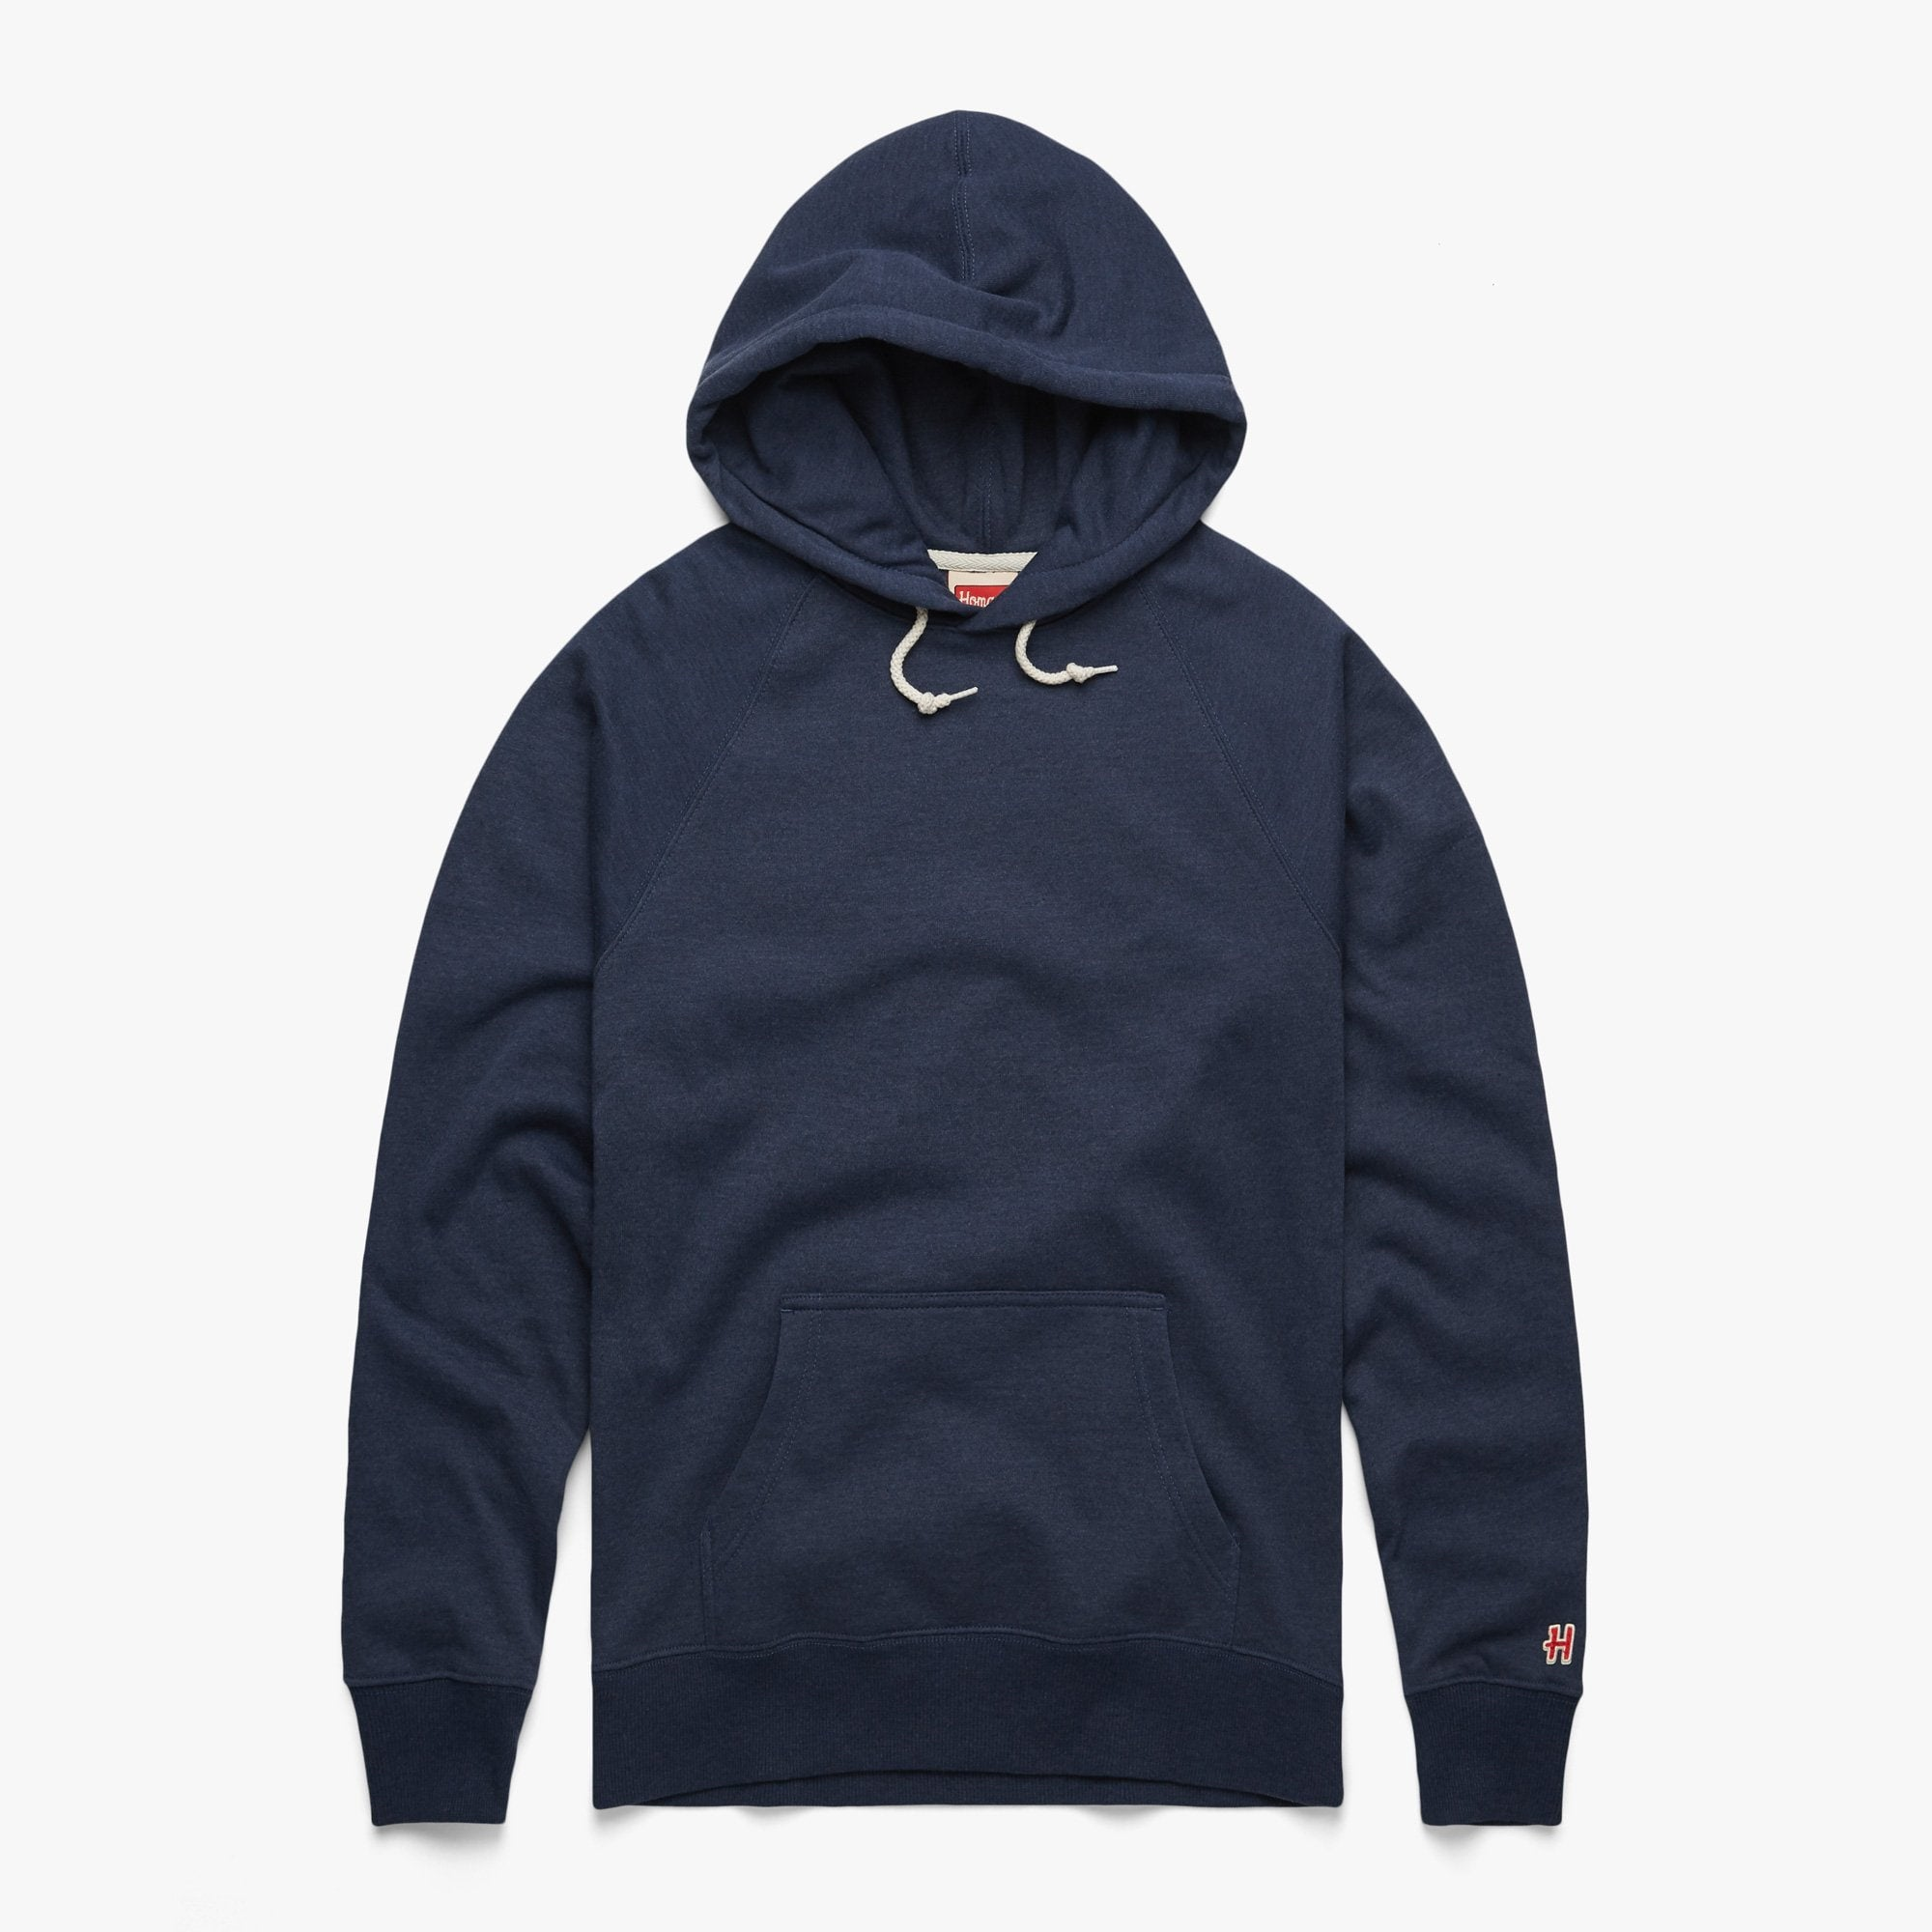 Go-To Hoodie